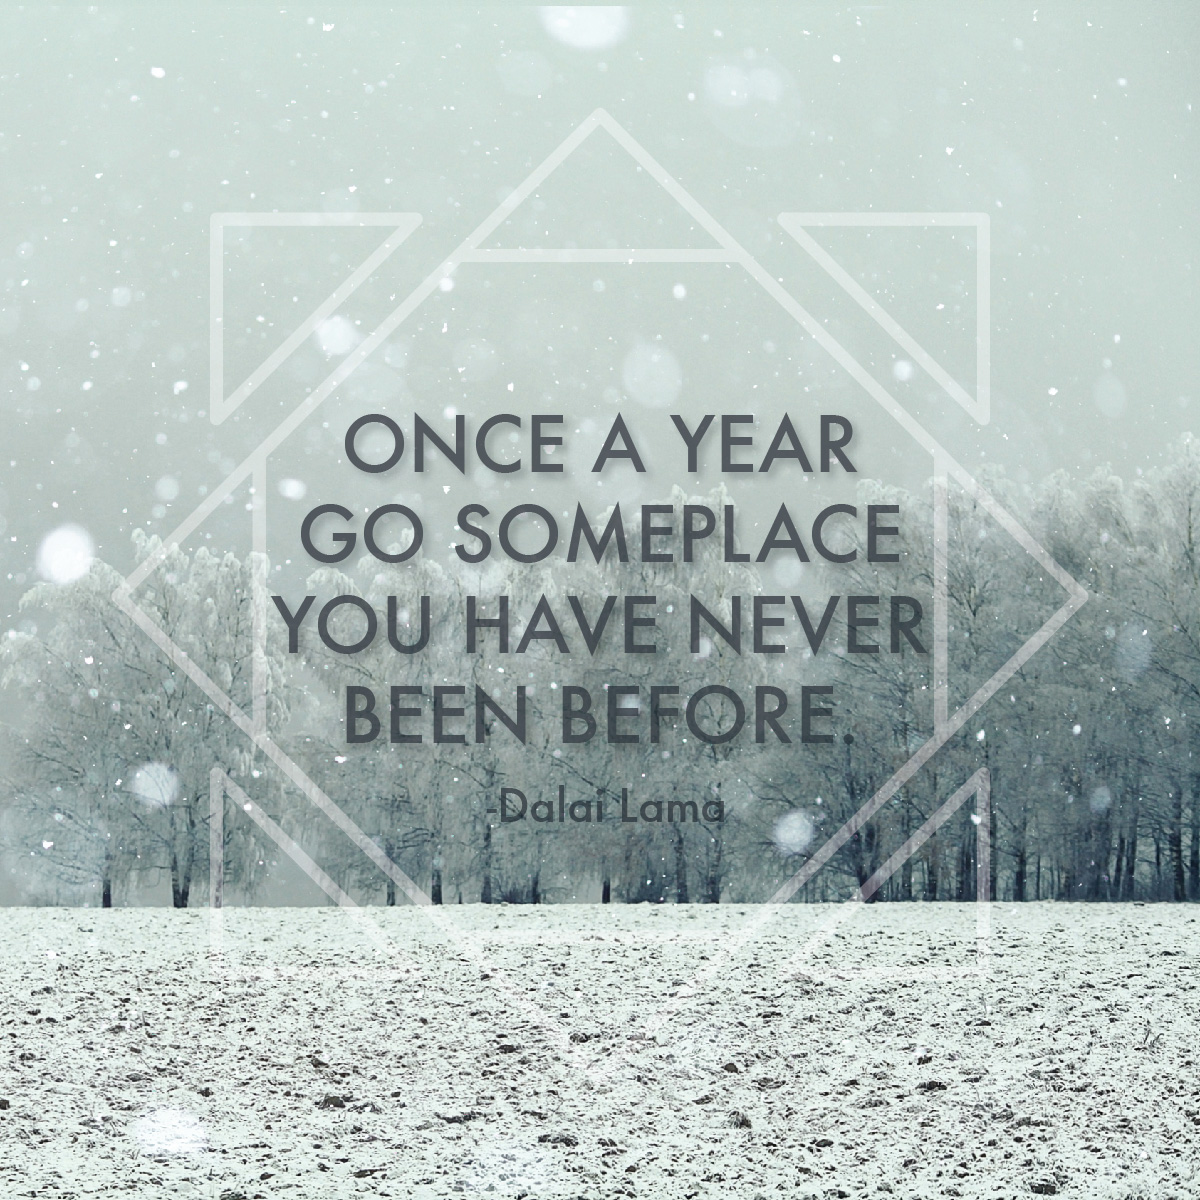 Travel Quote: once a year go someplace you have never been before